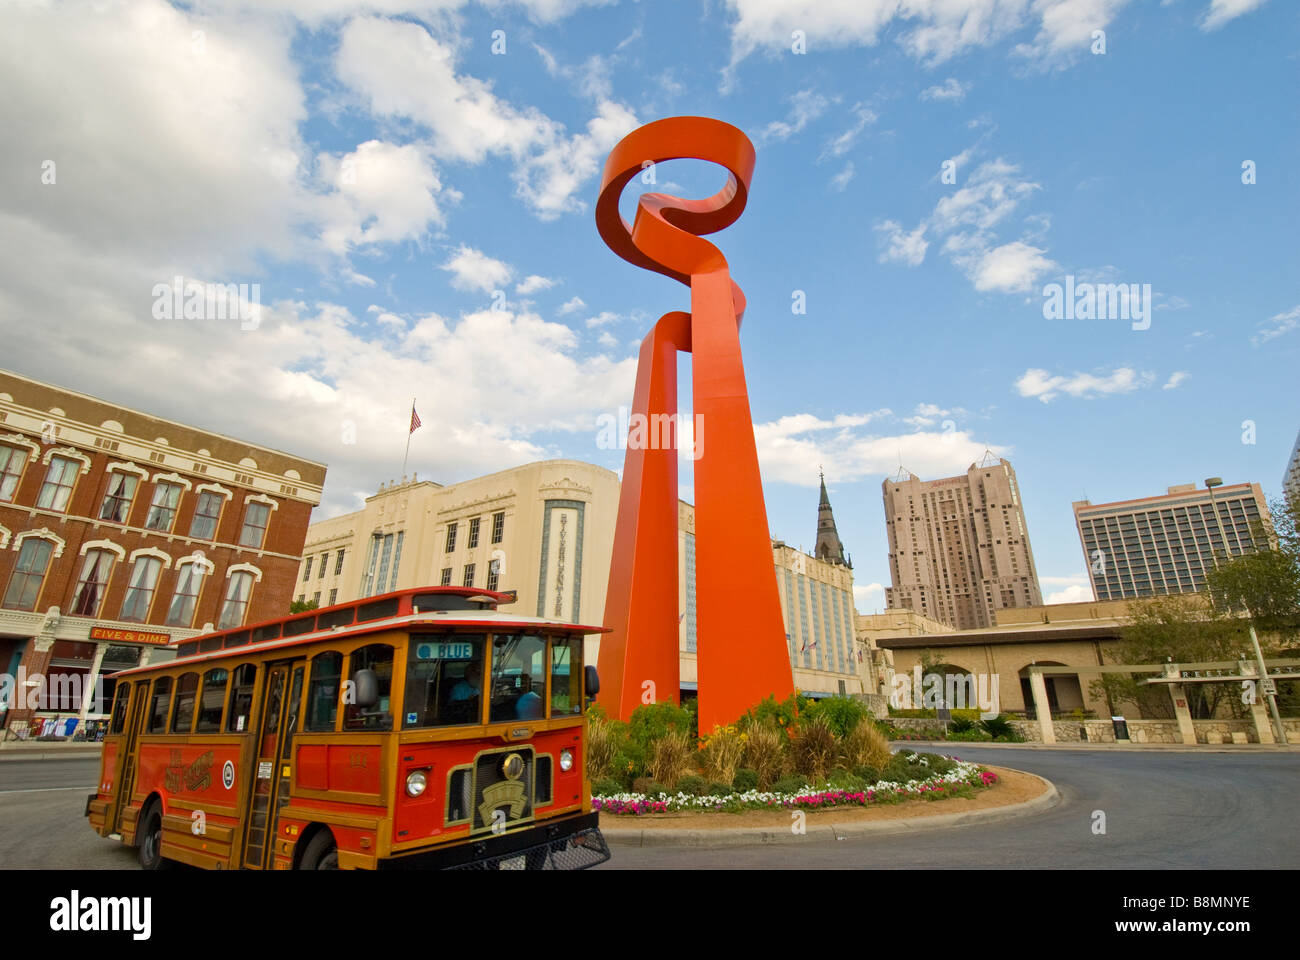 Torch of Freedom in downtown San Antonio Texas tx orange public modern art statue - Stock Image